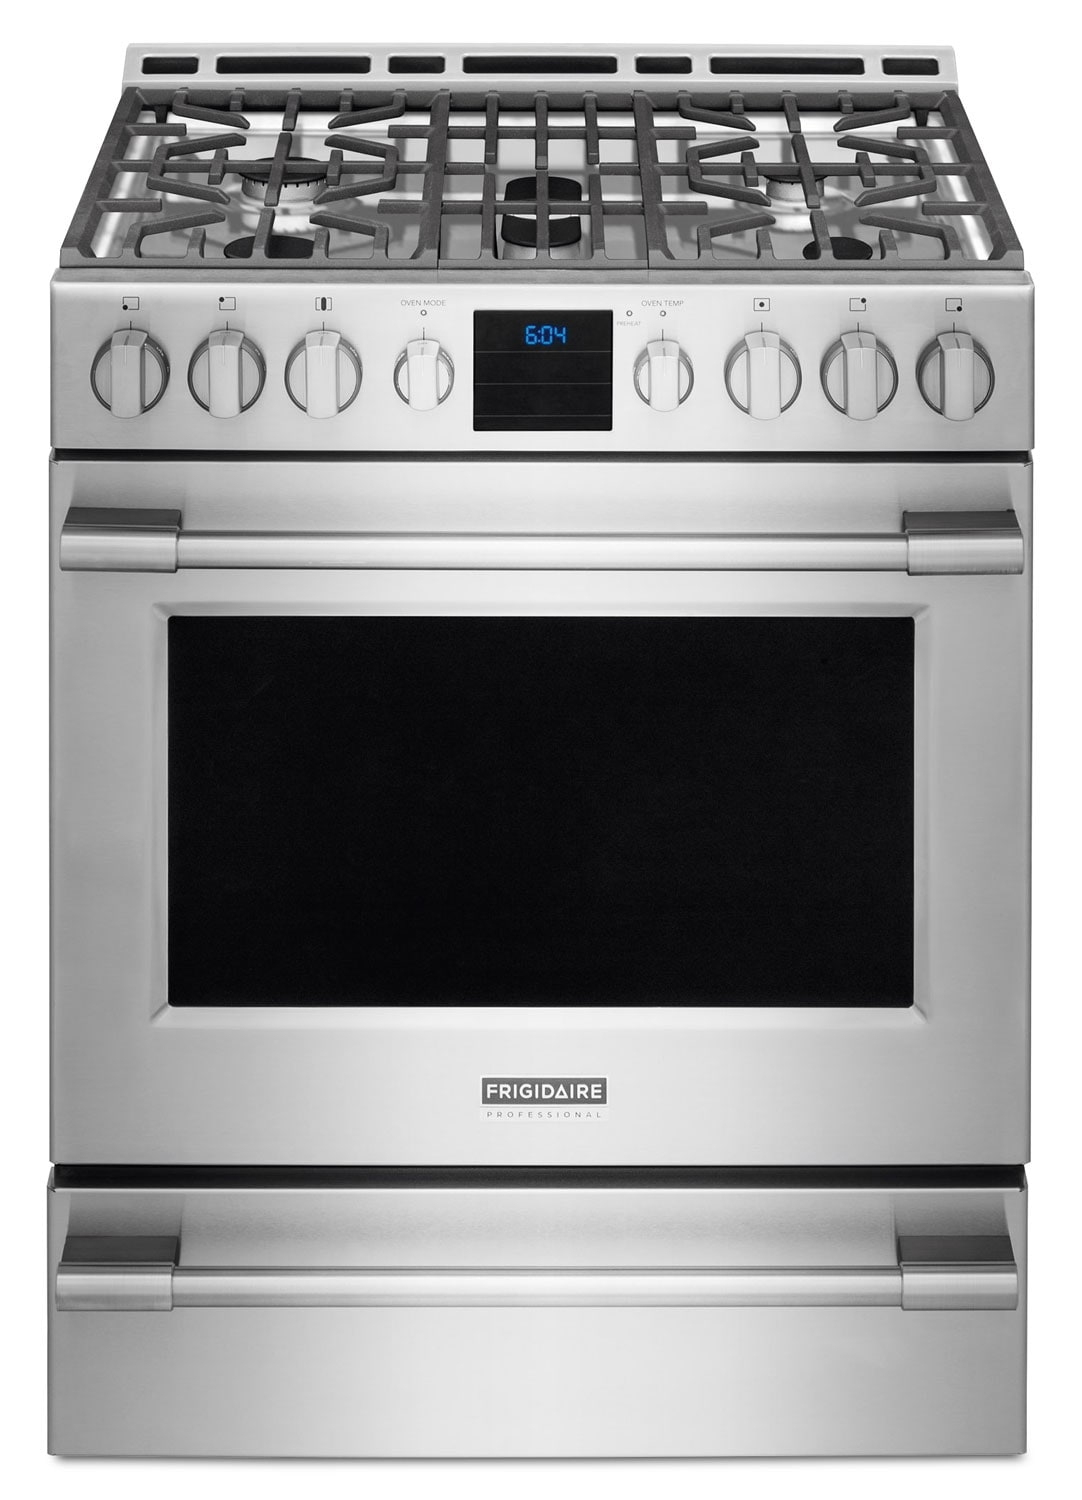 Cooking Products - Frigidaire Professional Stainless Steel Freestanding Gas Convection Range (5.1 Cu. Ft.) - FPGH3077RF